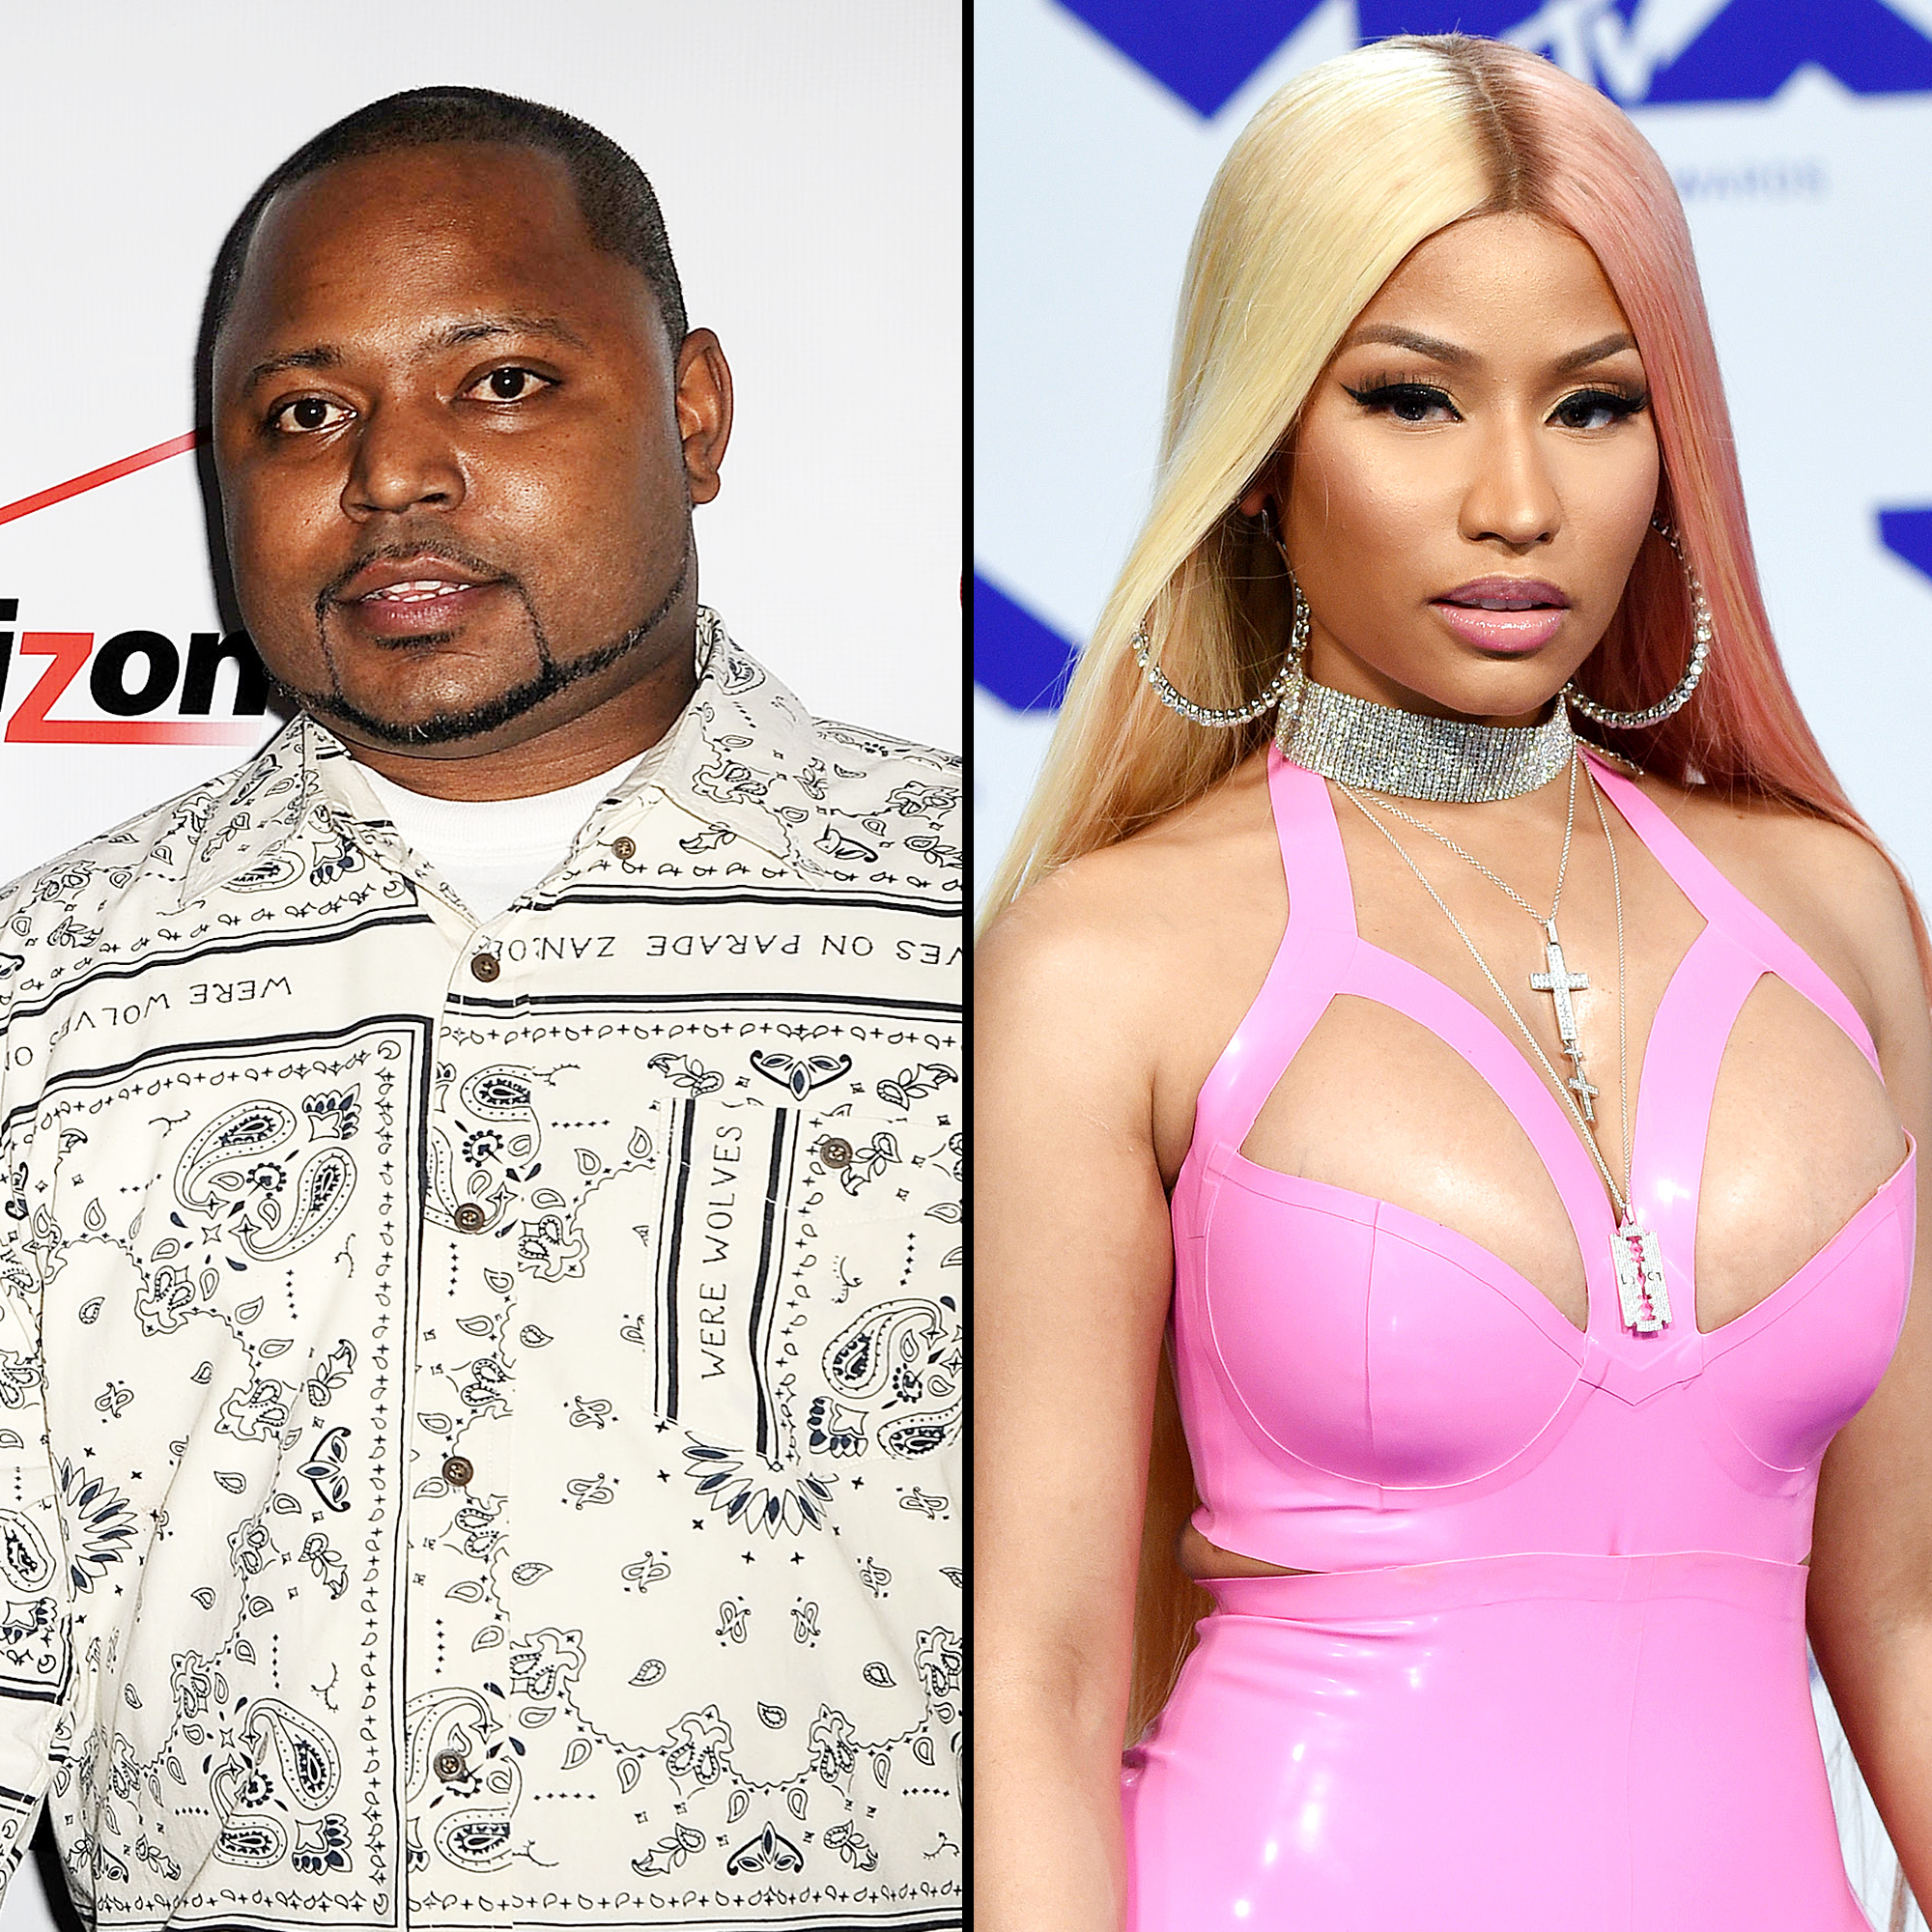 Guilty! Nicki Minaj's Older Brother Convicted Of Raping 11-Year-Old Girl